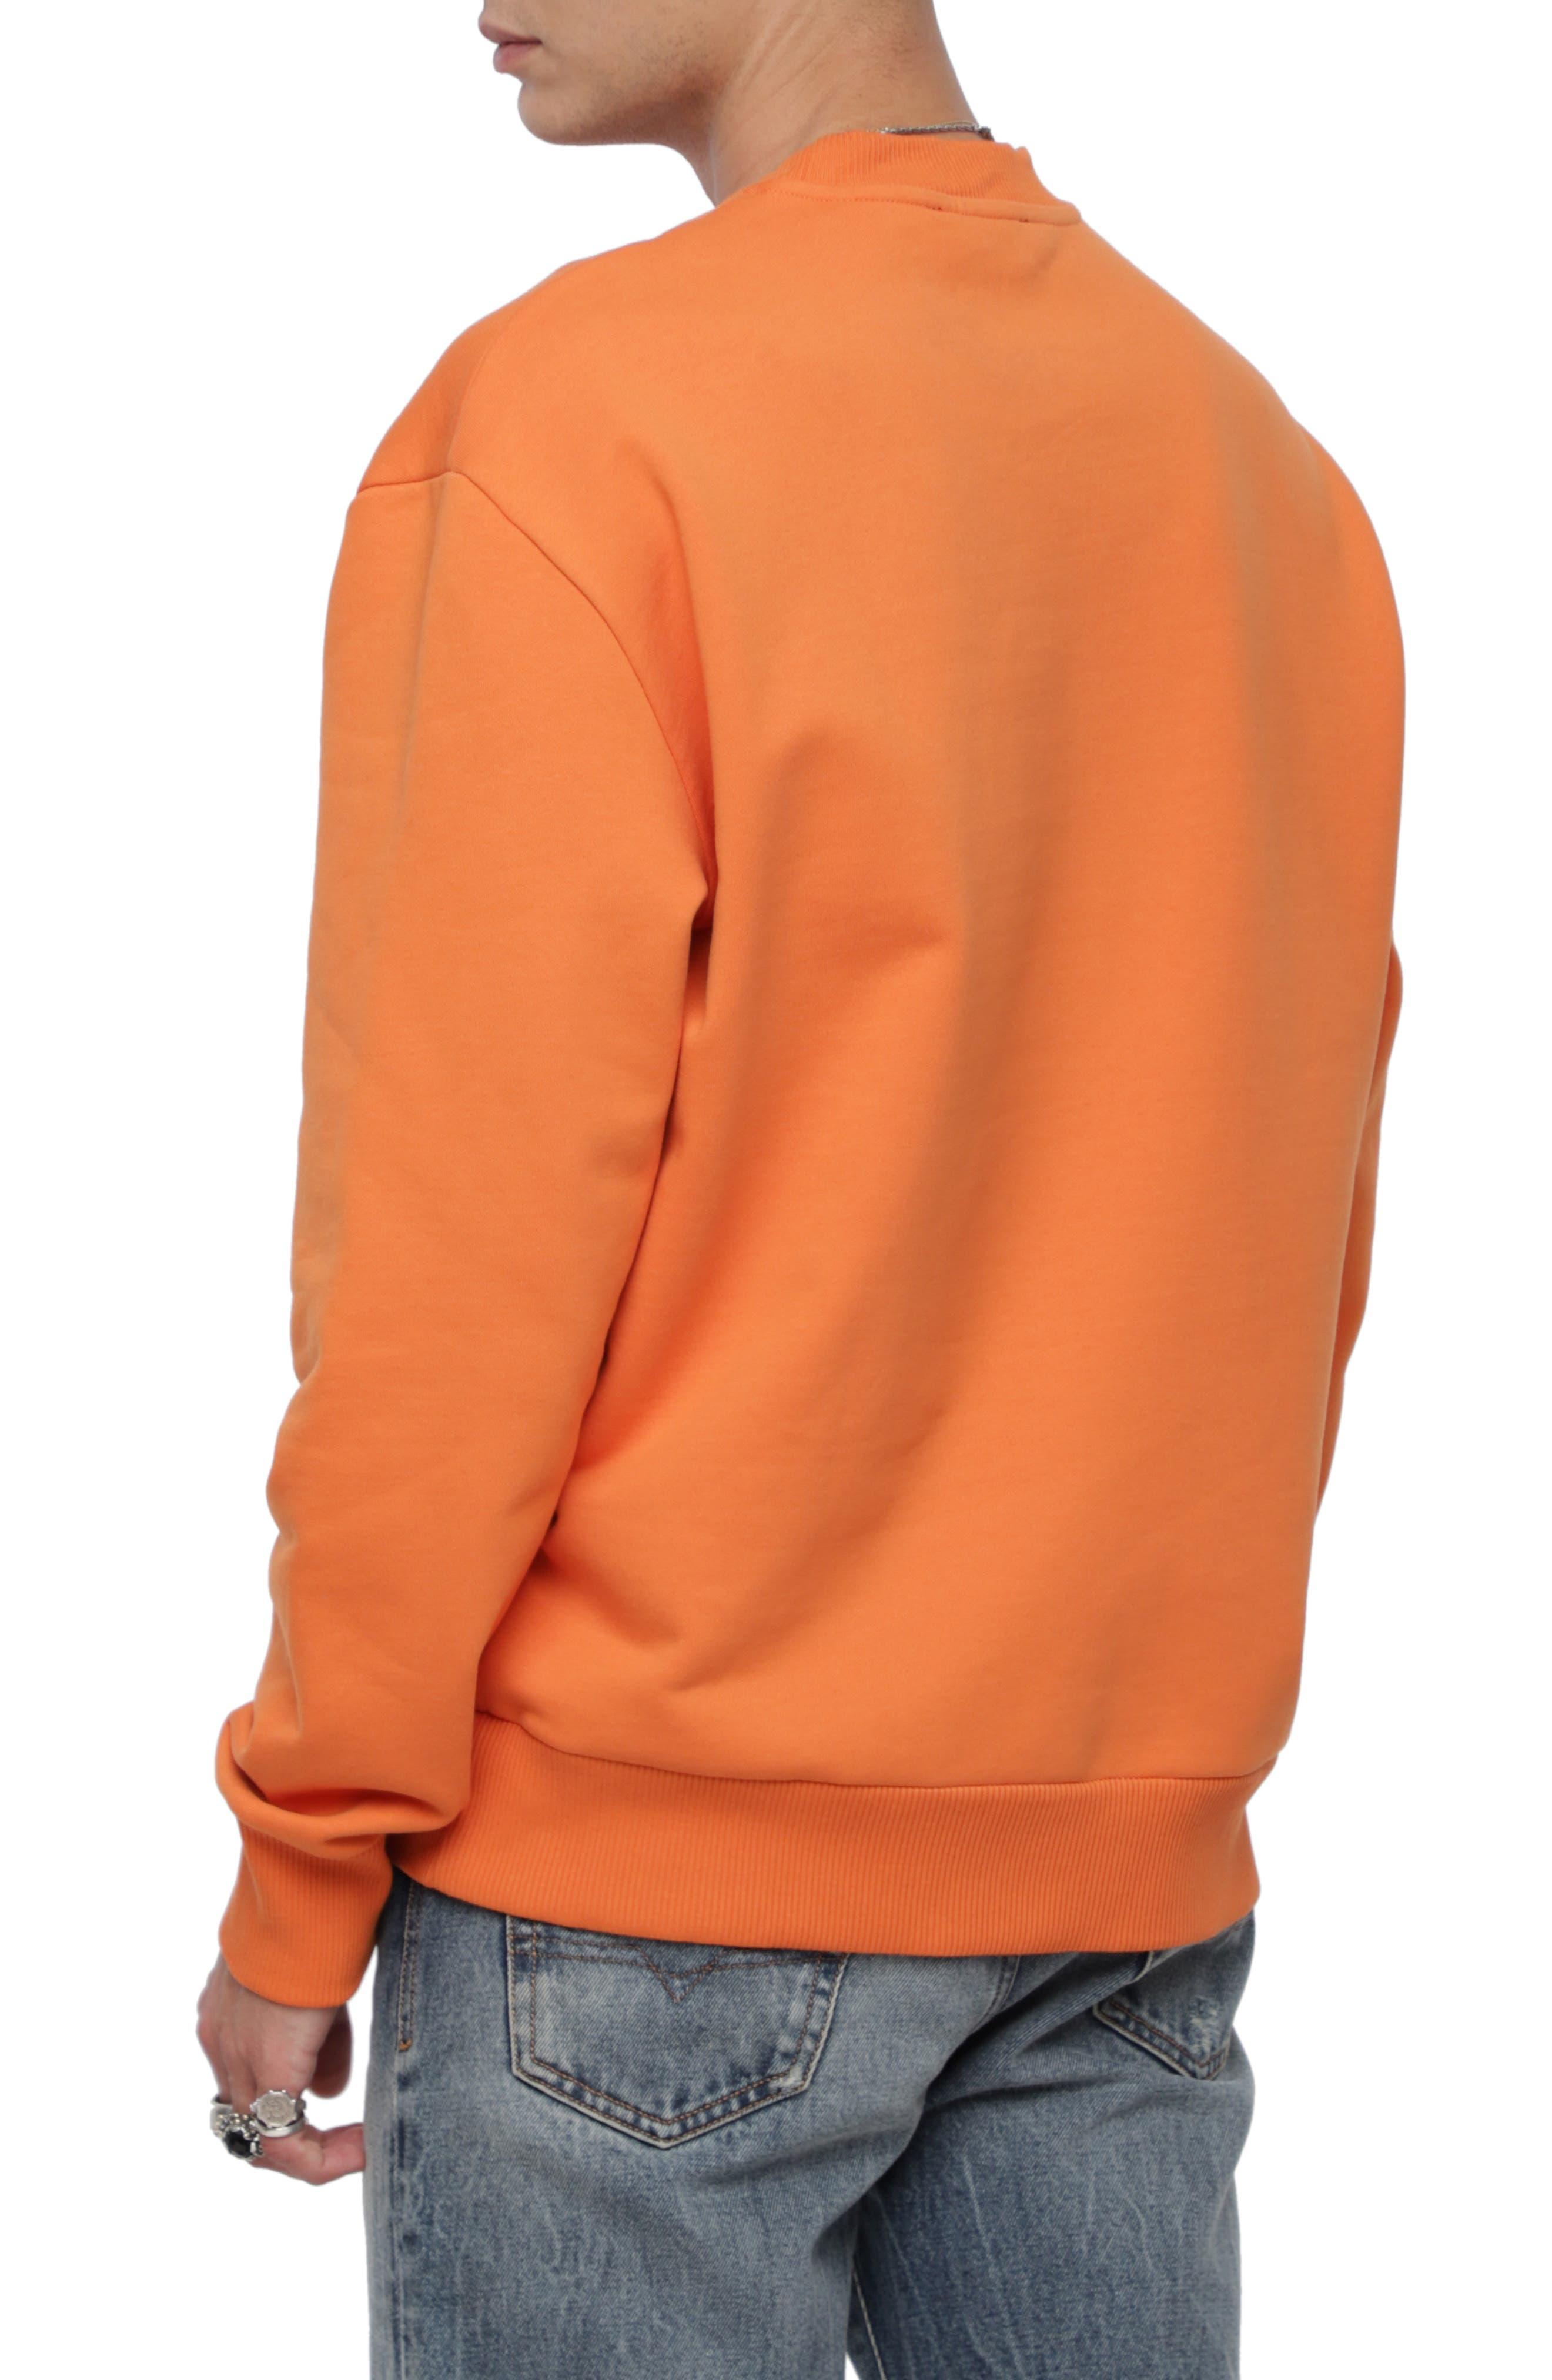 S-CREW-DIVISION Sweatshirt,                             Alternate thumbnail 2, color,                             ORANGE